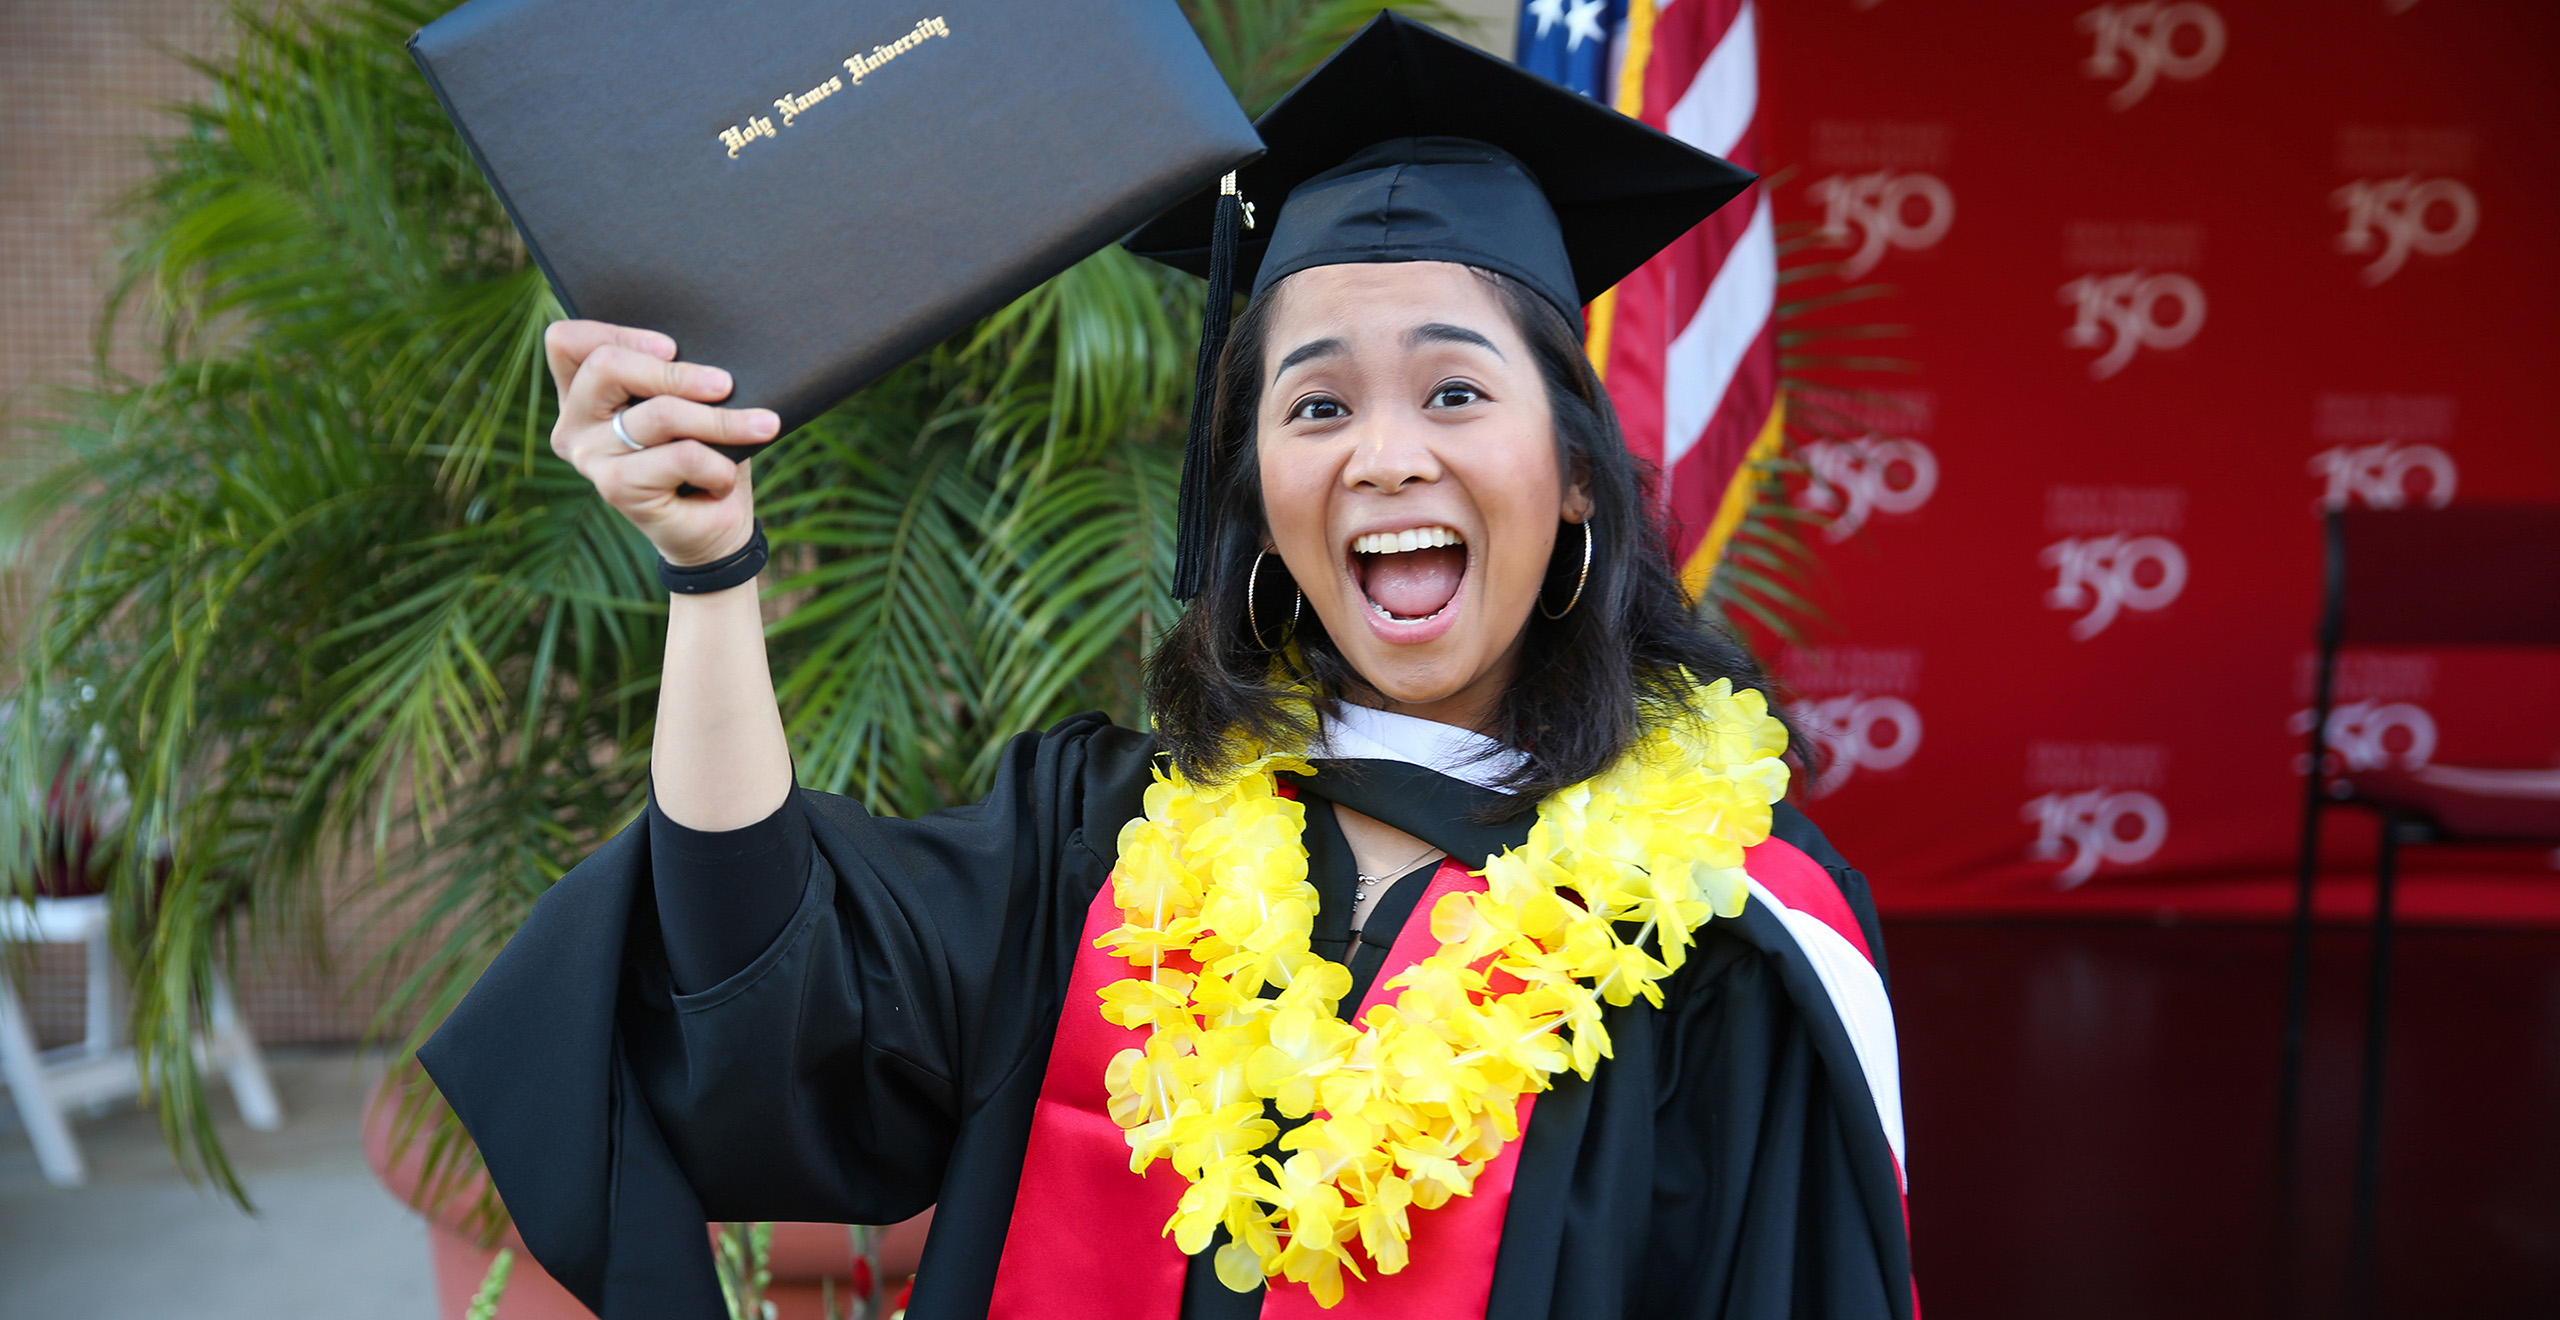 Grad with Lei image